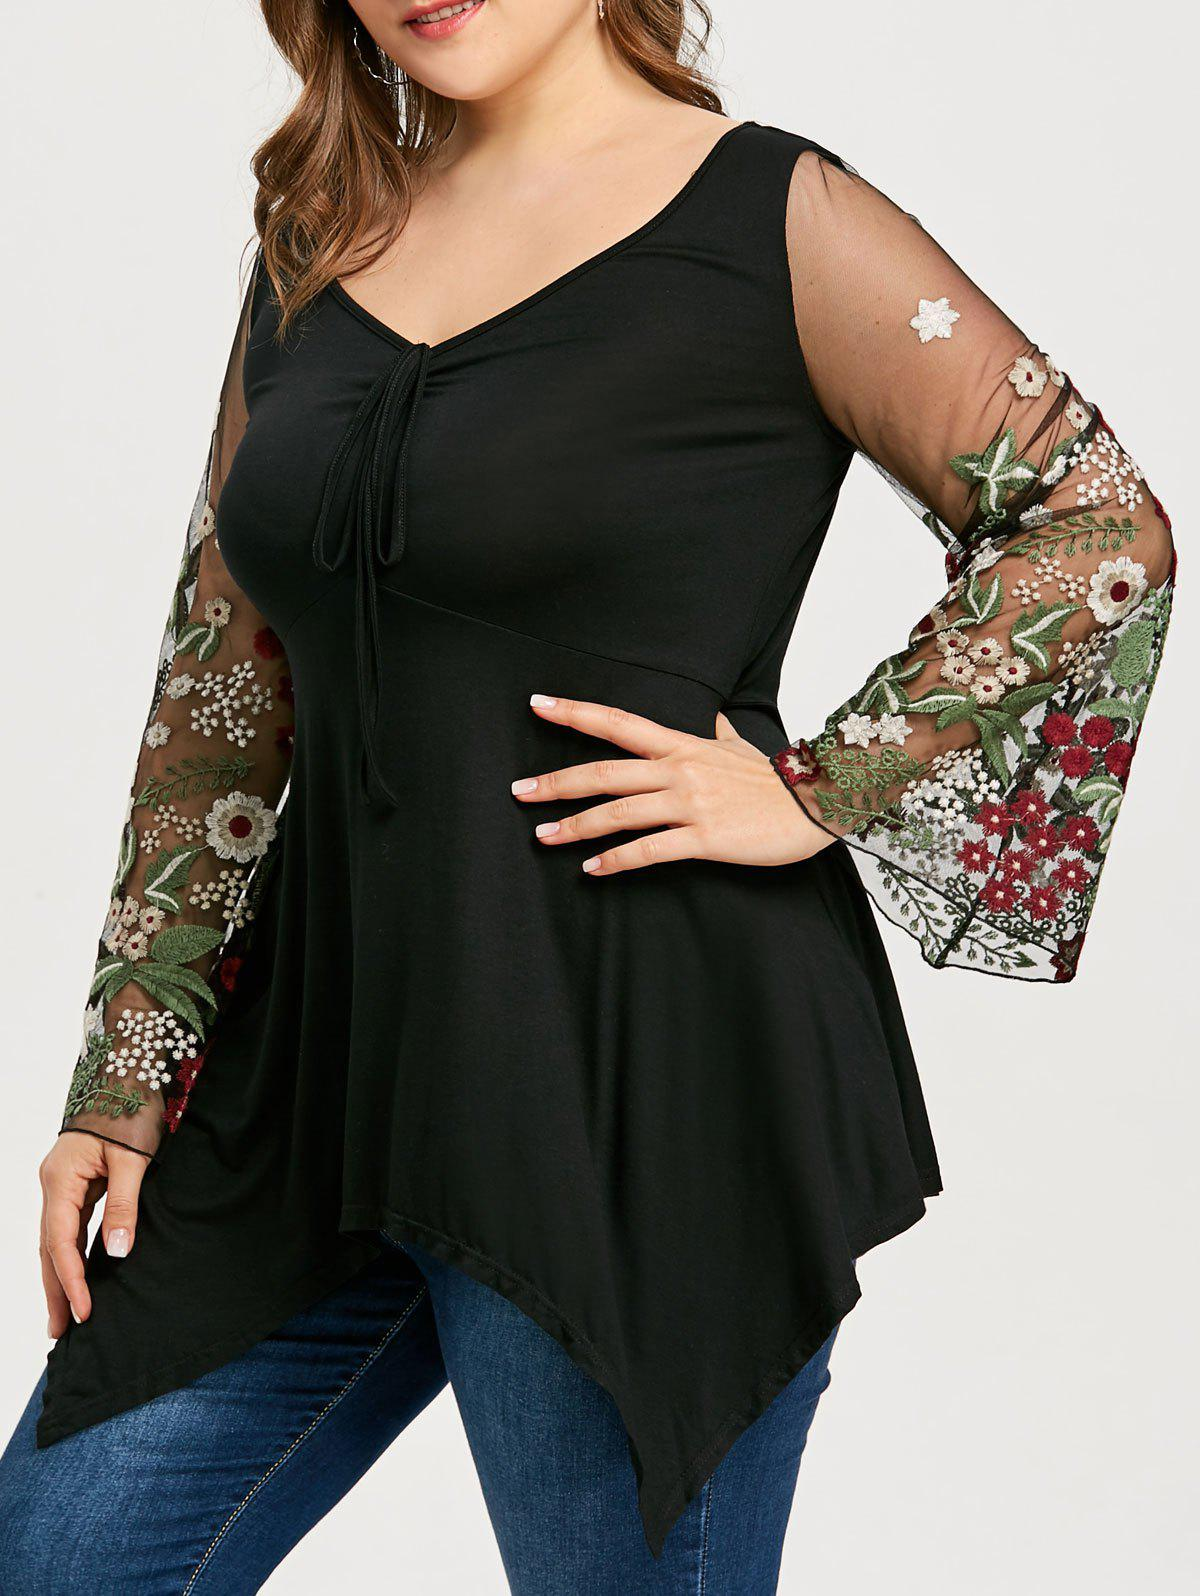 Hot Floral Embroidery Plus Size Tunic T-shirt